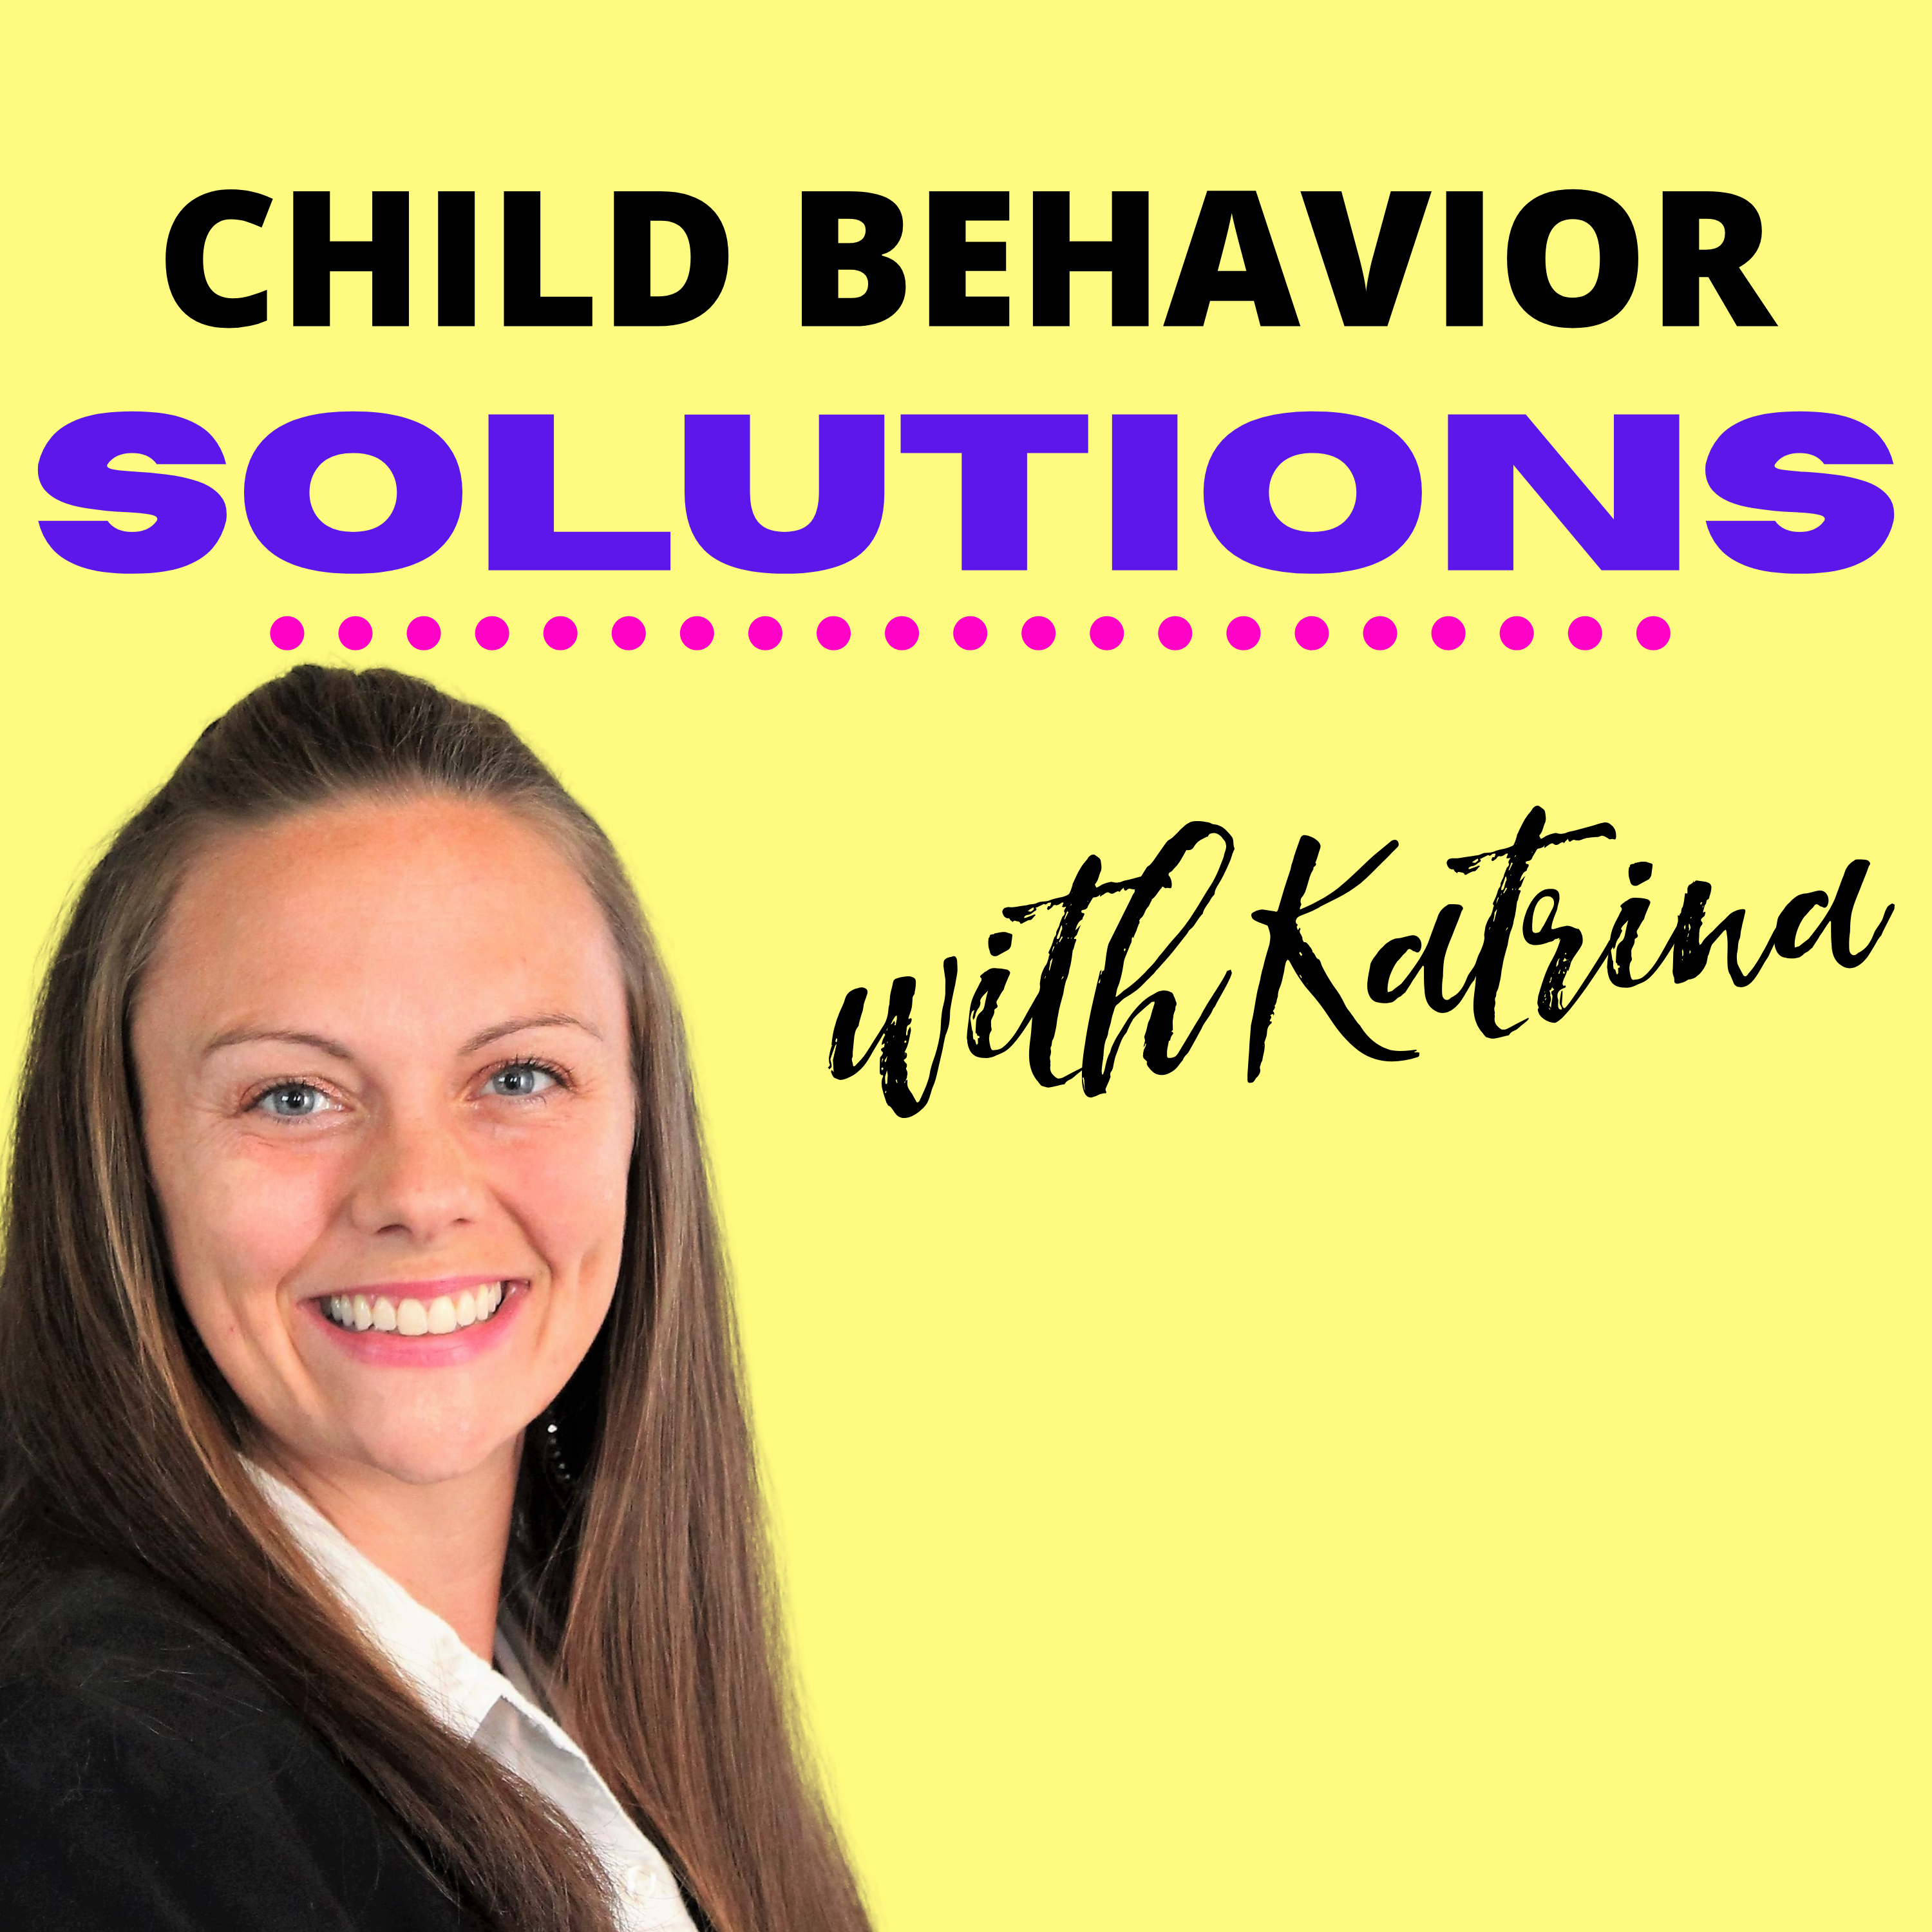 Child Behavior Solutions with Katrina show art